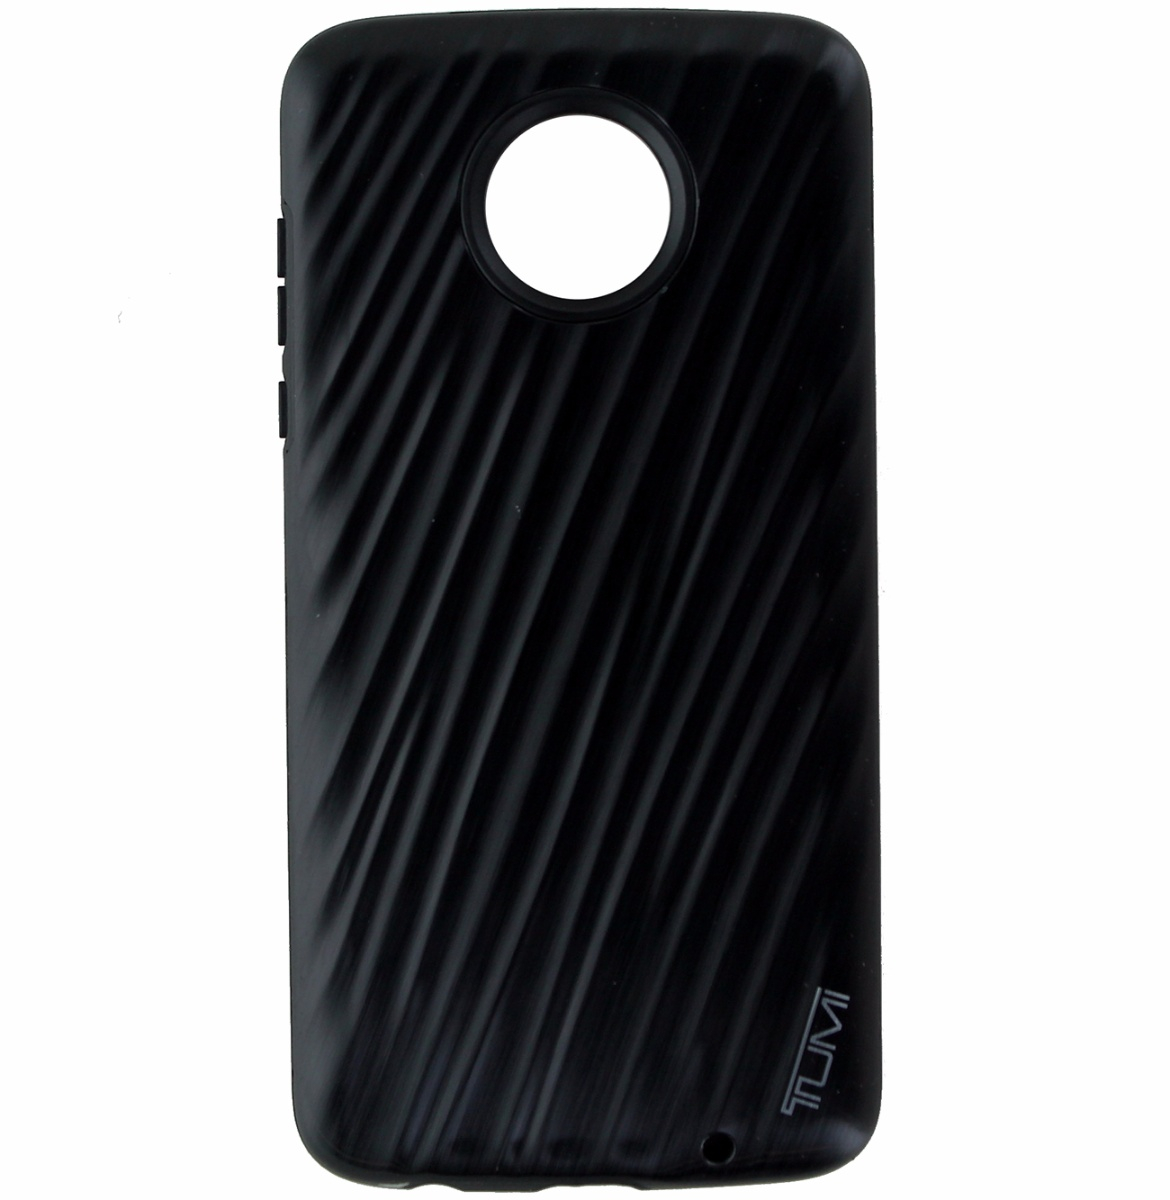 Tumi 19 Degree Series Hybrid Hard Case For Motorola Moto Z2 Play - Black (Refurbished)